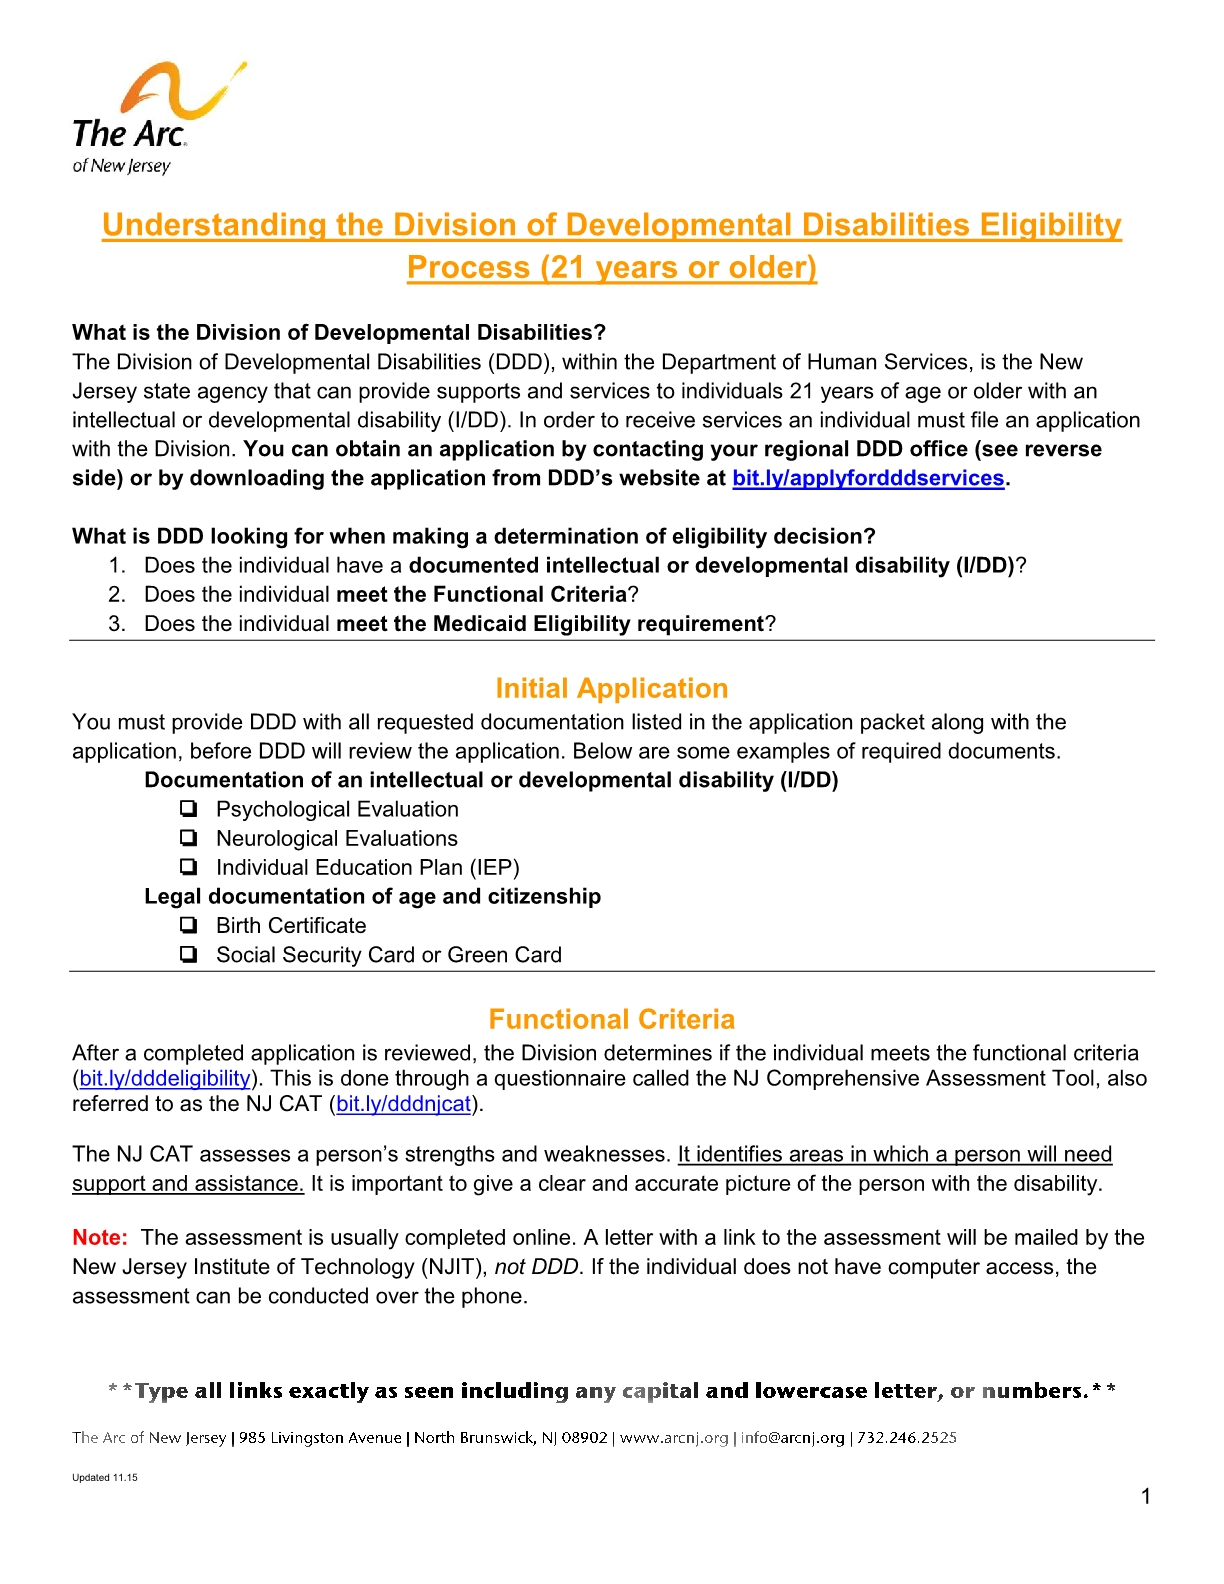 The Arc Of New Jersey Family Institute Resources Fact Sheets